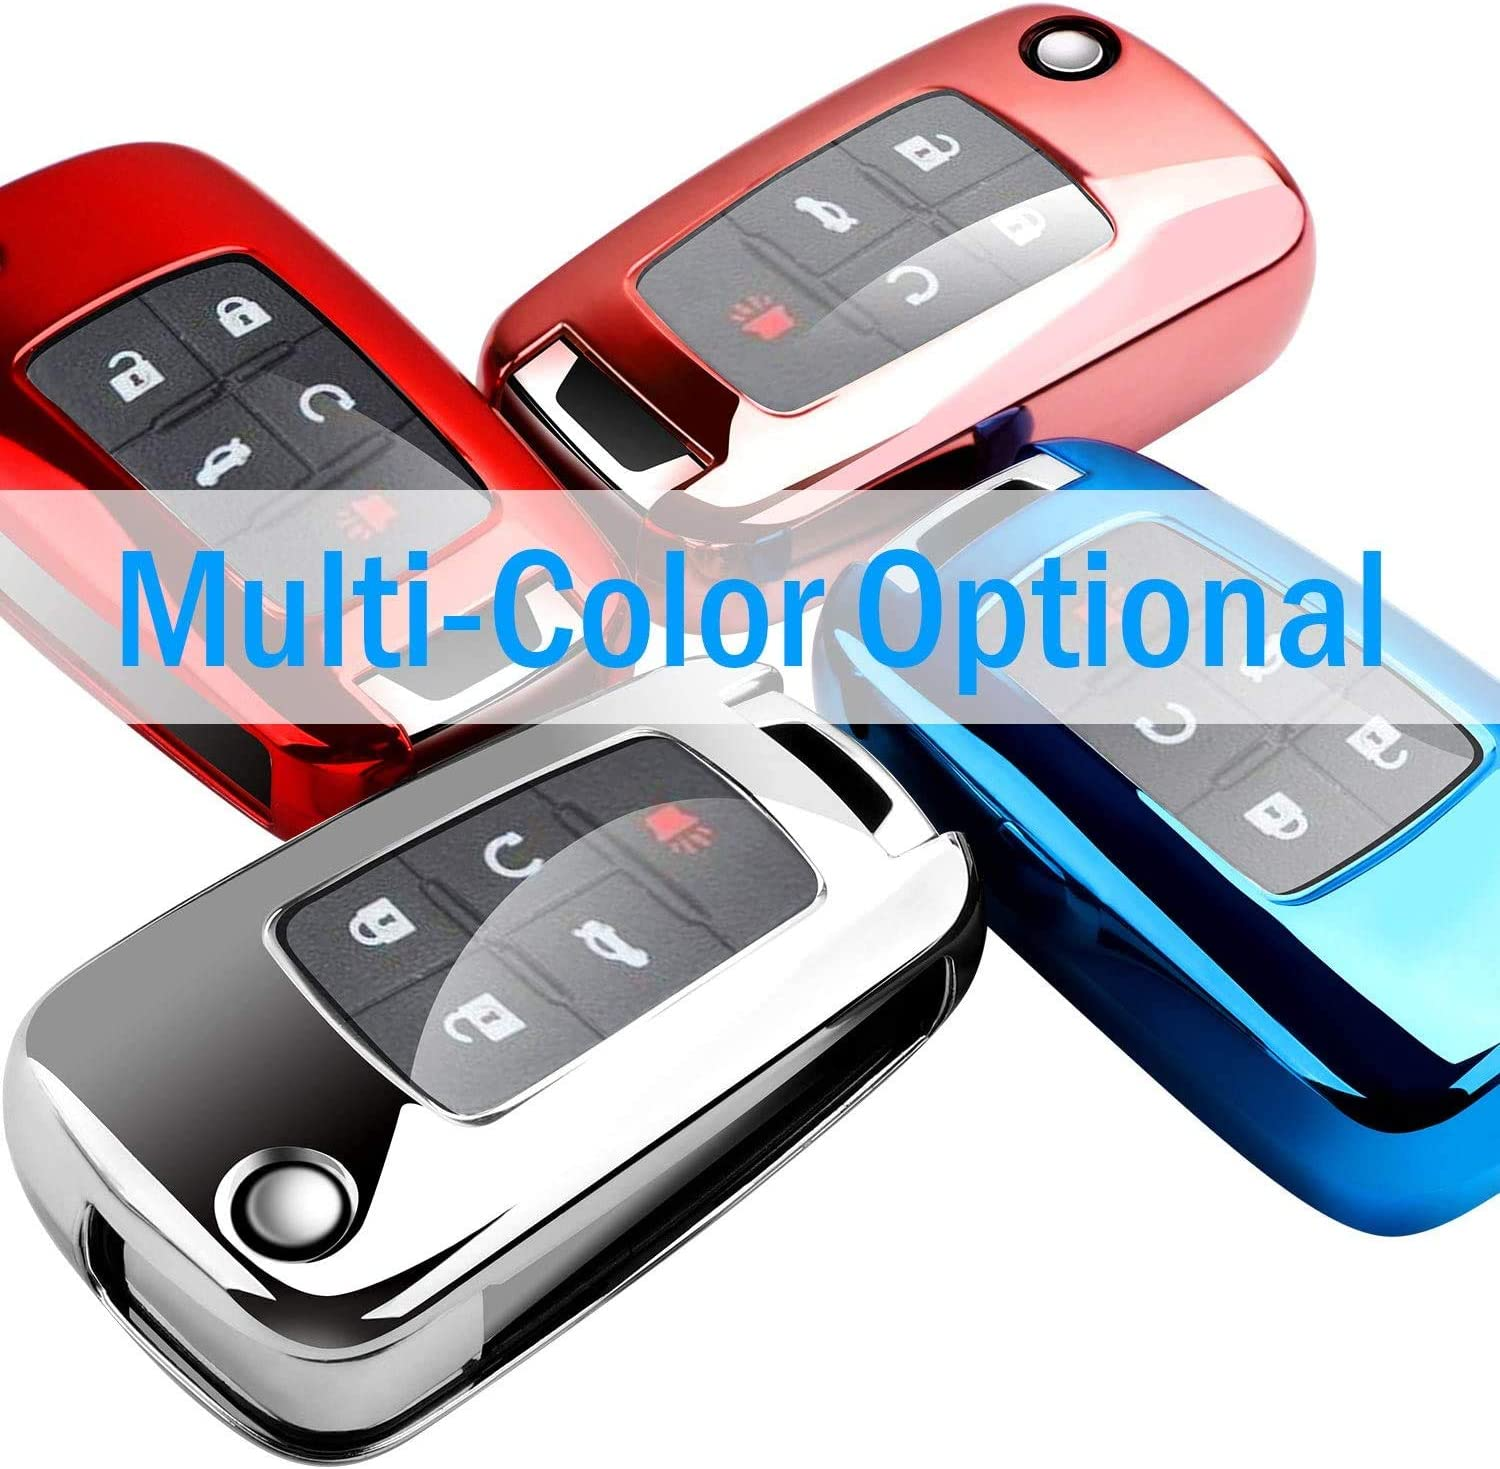 Blue N//A for Chevrolet Key Fob Cover case Shell Cover TPU Protector Holder with Key Chain for Chevrolet Chevy 2020 2019 2018 2017 2016 Malibu Camaro Cruze Traverse Spark Equinox Sonic Volt Bolt